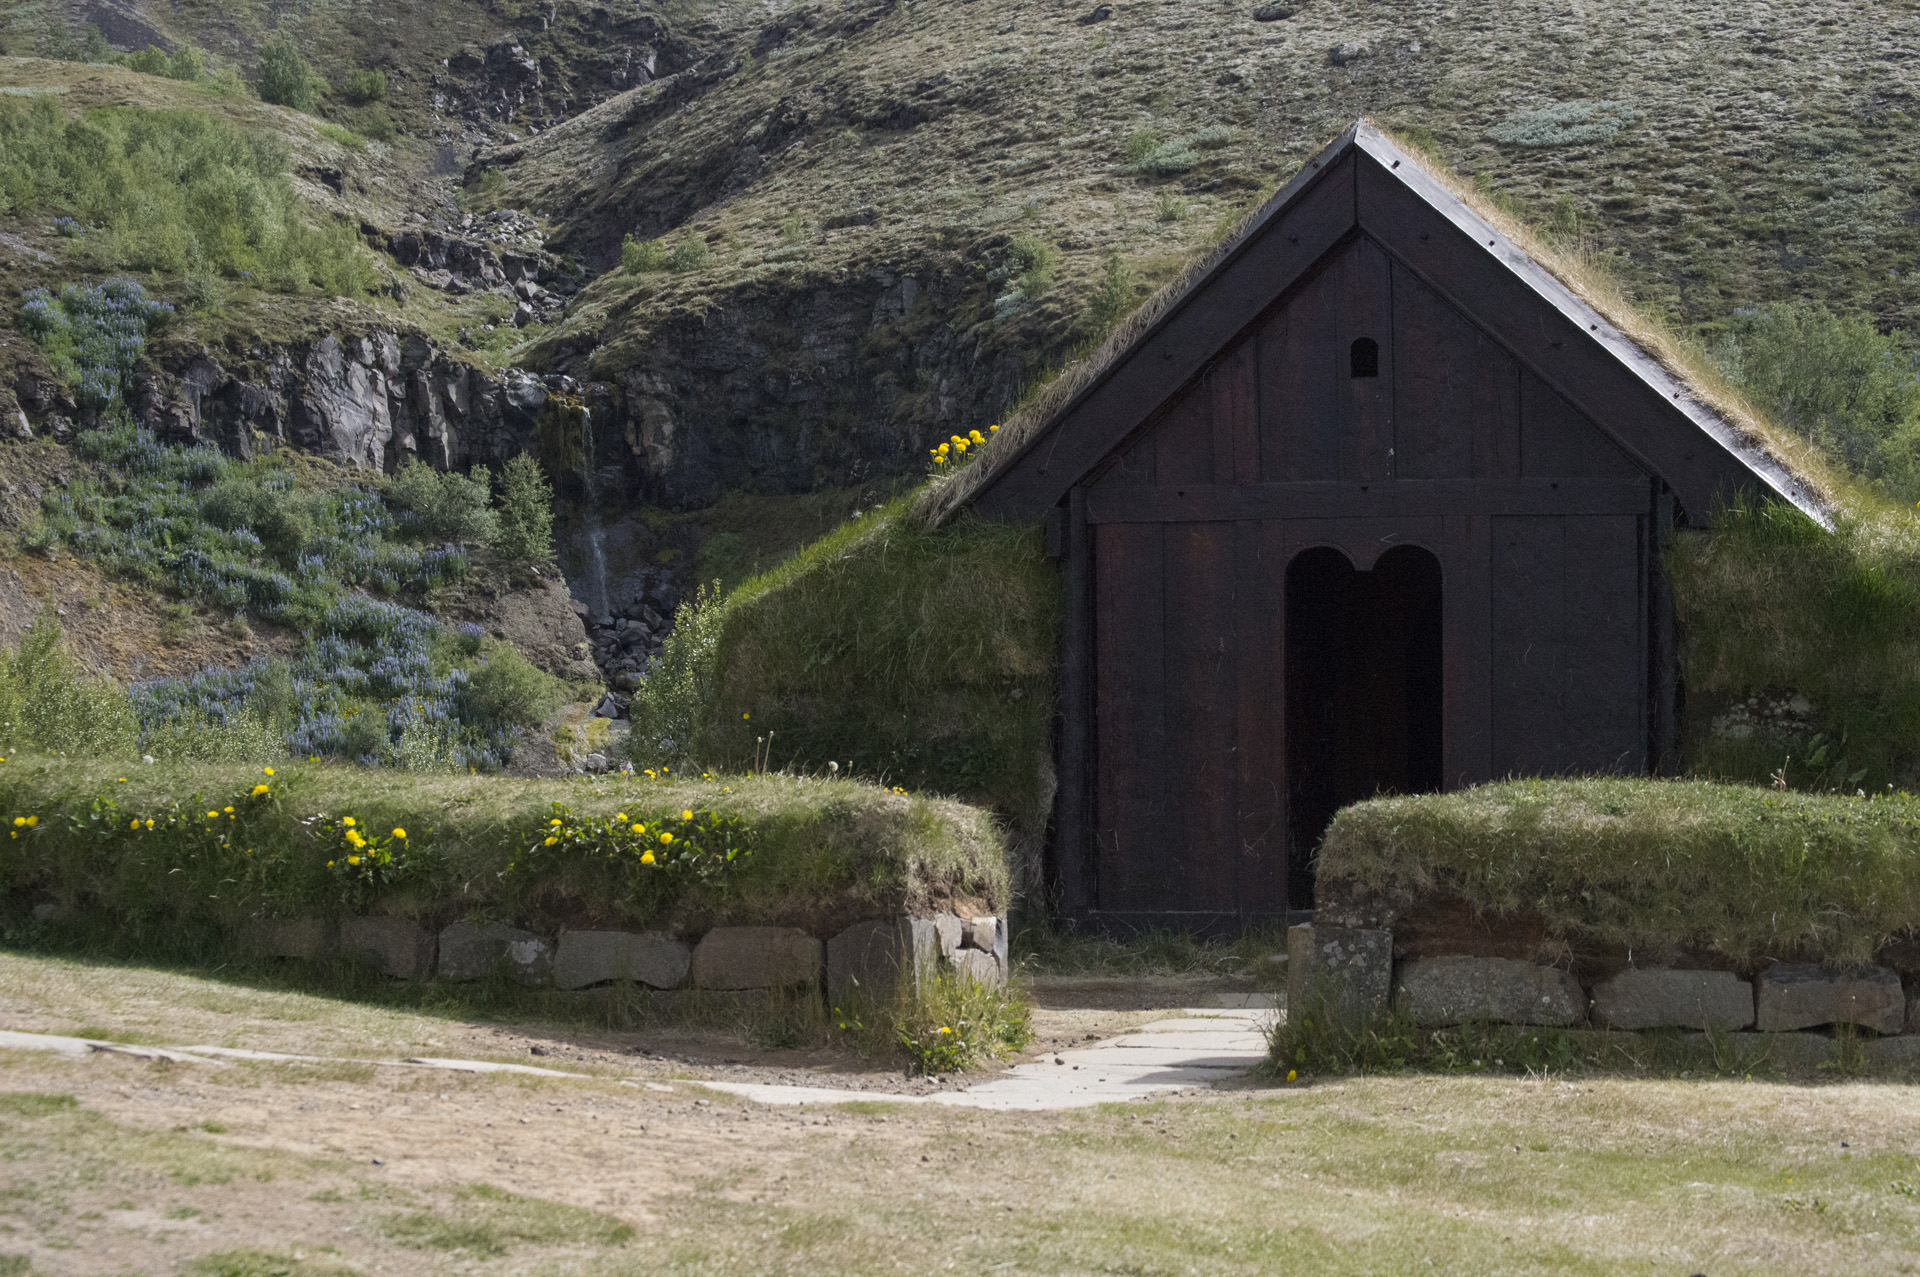 Photos: The remnants (and restoration) of Viking life